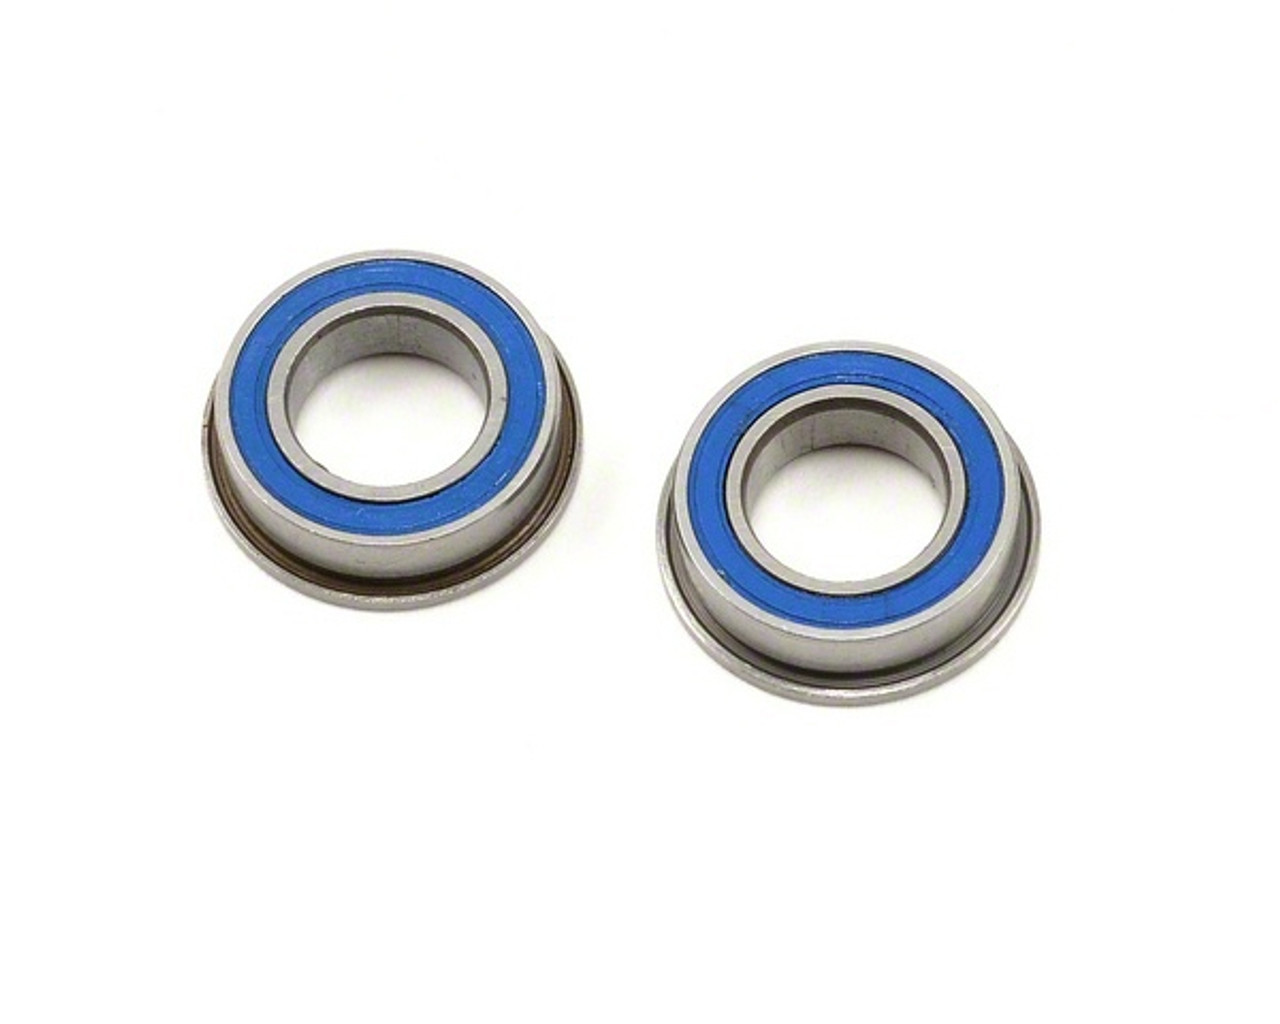 Bearings Metric Series 3x6x2.5 MM Flanged rubber sealed (2 Pack) (MF63 2RS)